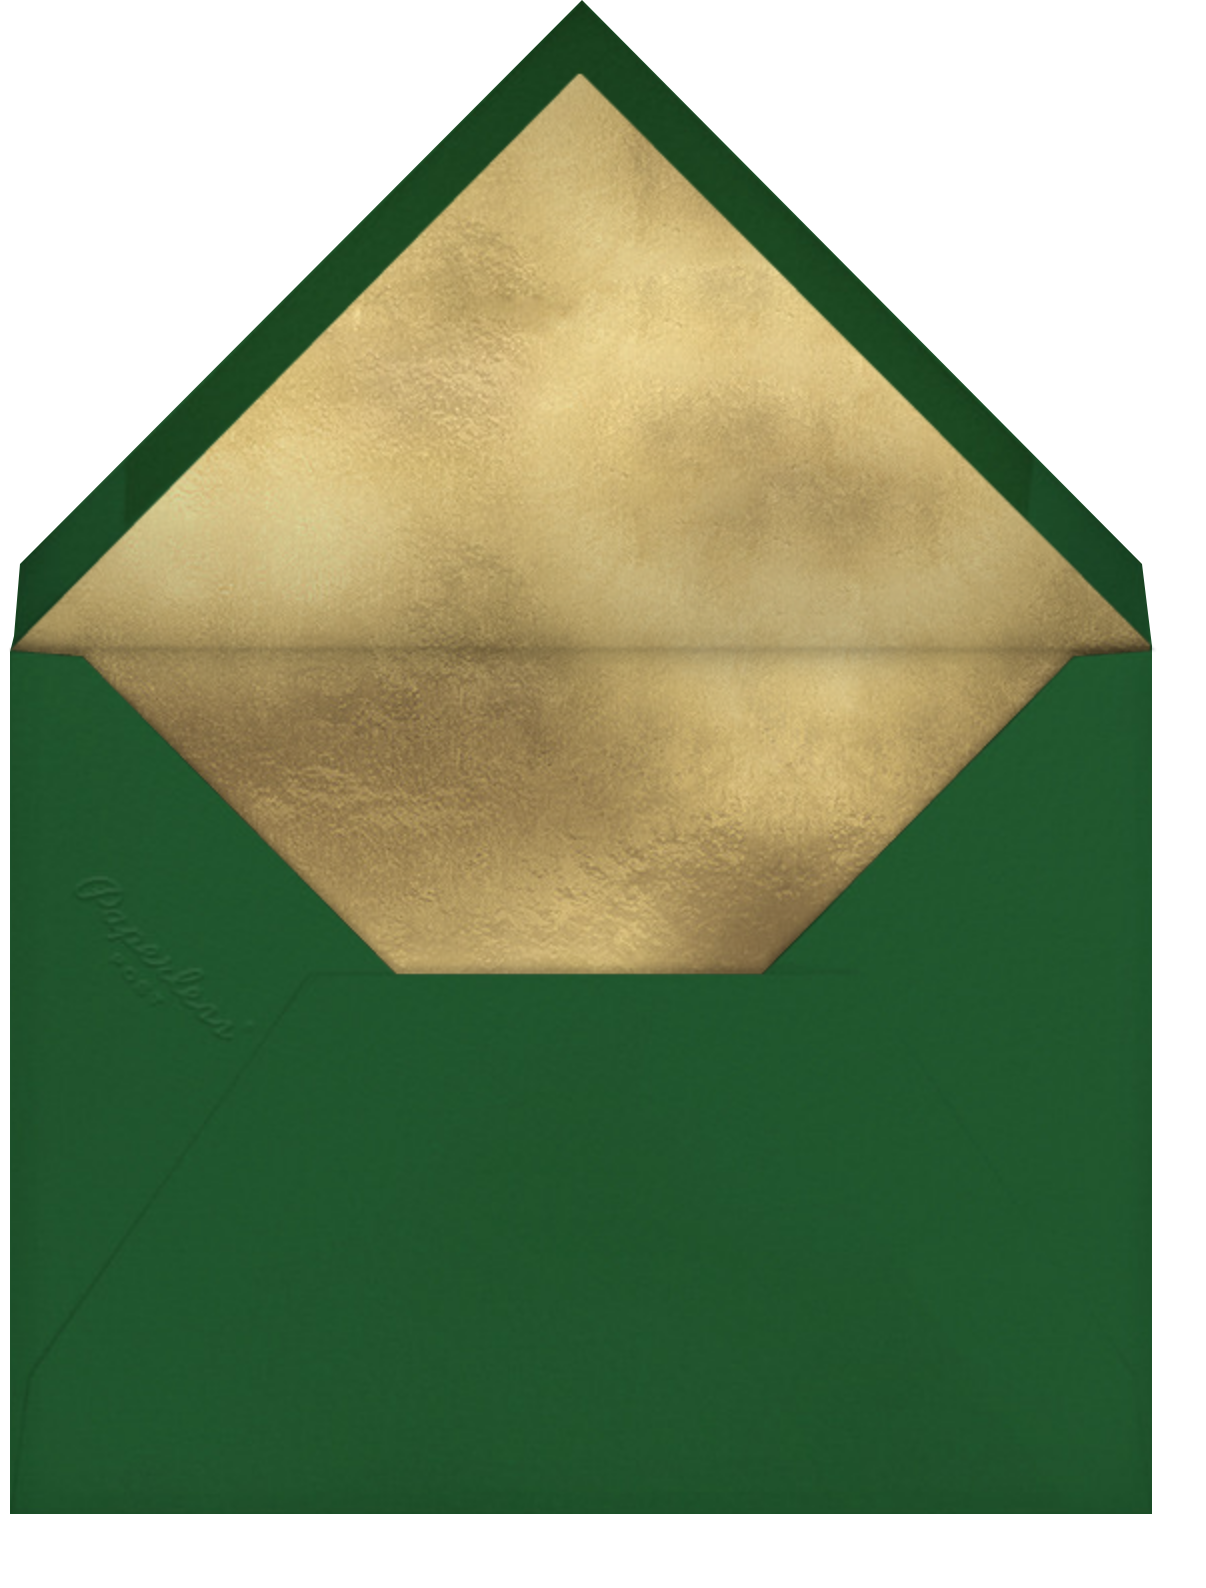 Octagons - Green/Gold - Paperless Post - Ramadan and Eid - envelope back